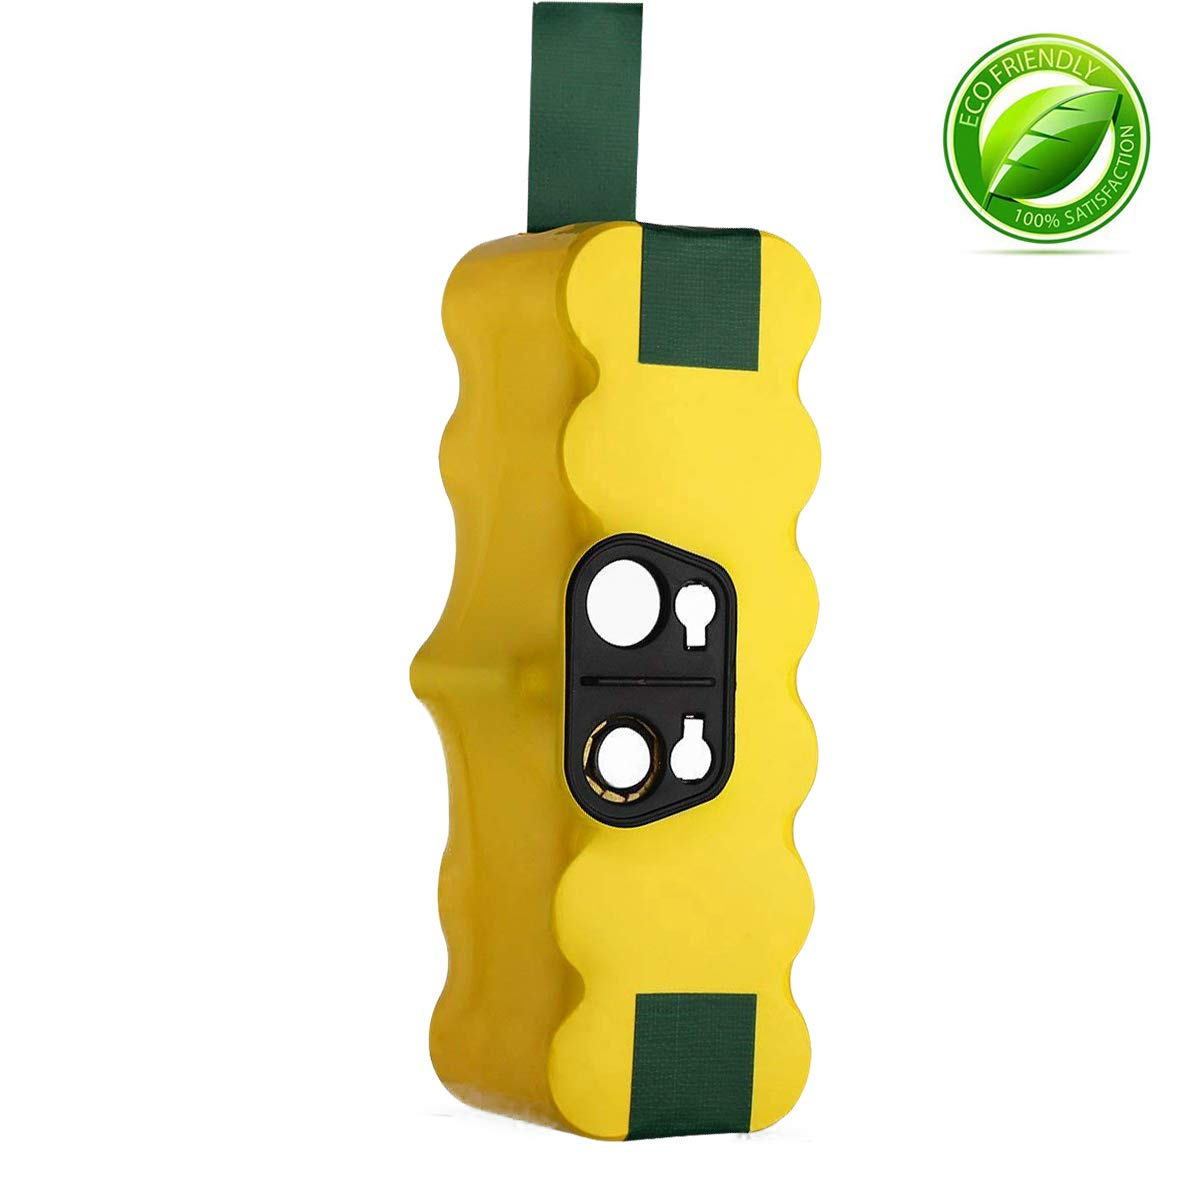 4500mAh Ni-MH Battery Replace for iRobot Roomba 14.4V R3 500 600 700 800 900 Series 500 510 530 531 532 535 536 540 550 552 560 570 580 595 600 620 660 700 760 770 780 790 800 870 900 980